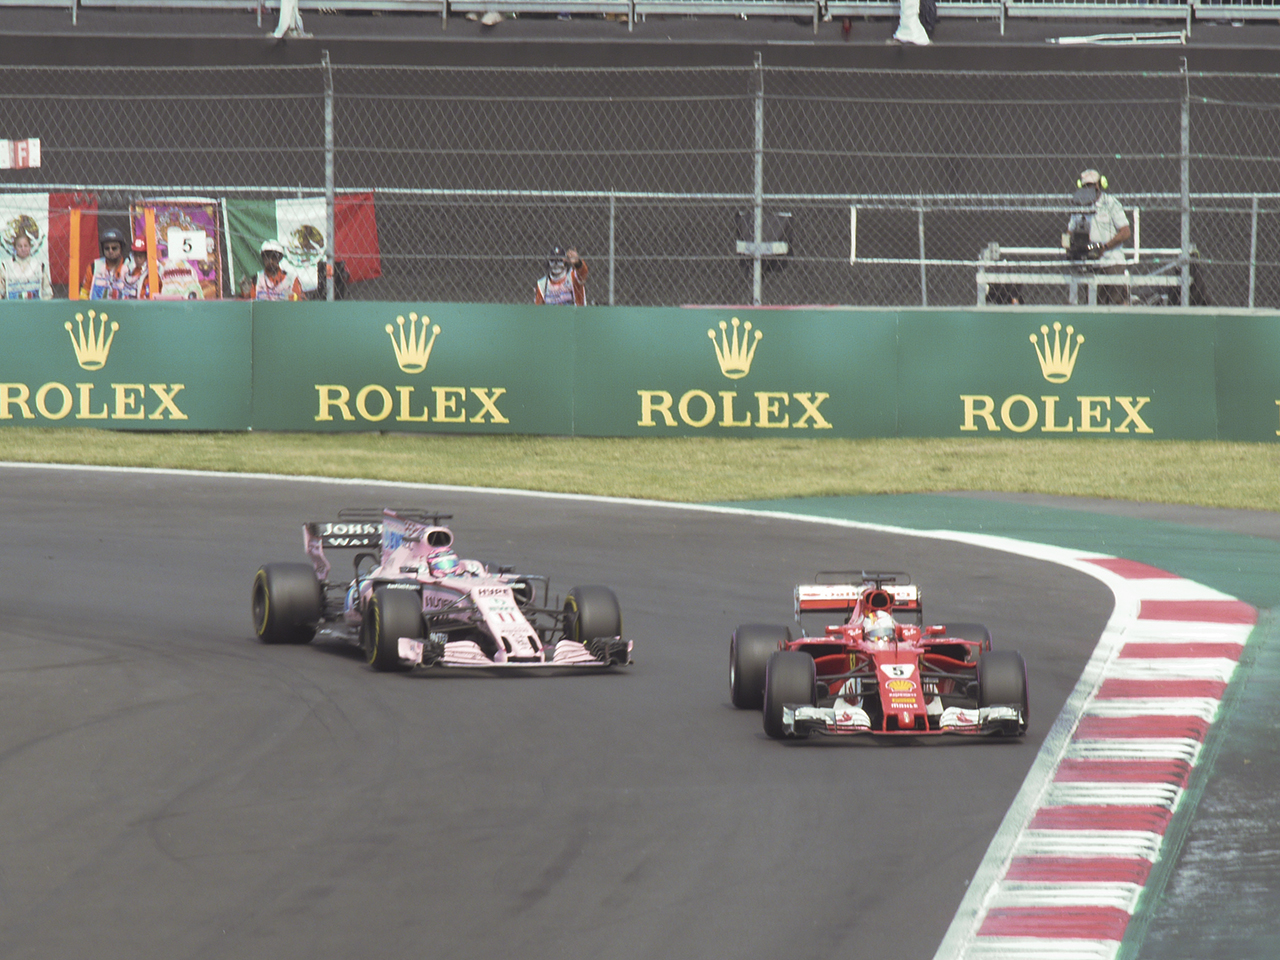 Four-time champion Sebastian Vettel passes Sergio Perez and his Mercedes-powered VJM10 Force India on his drive to a fourth-place finish. Perez held off Vettel for several laps. but the Ferrari driver was not to be denied.